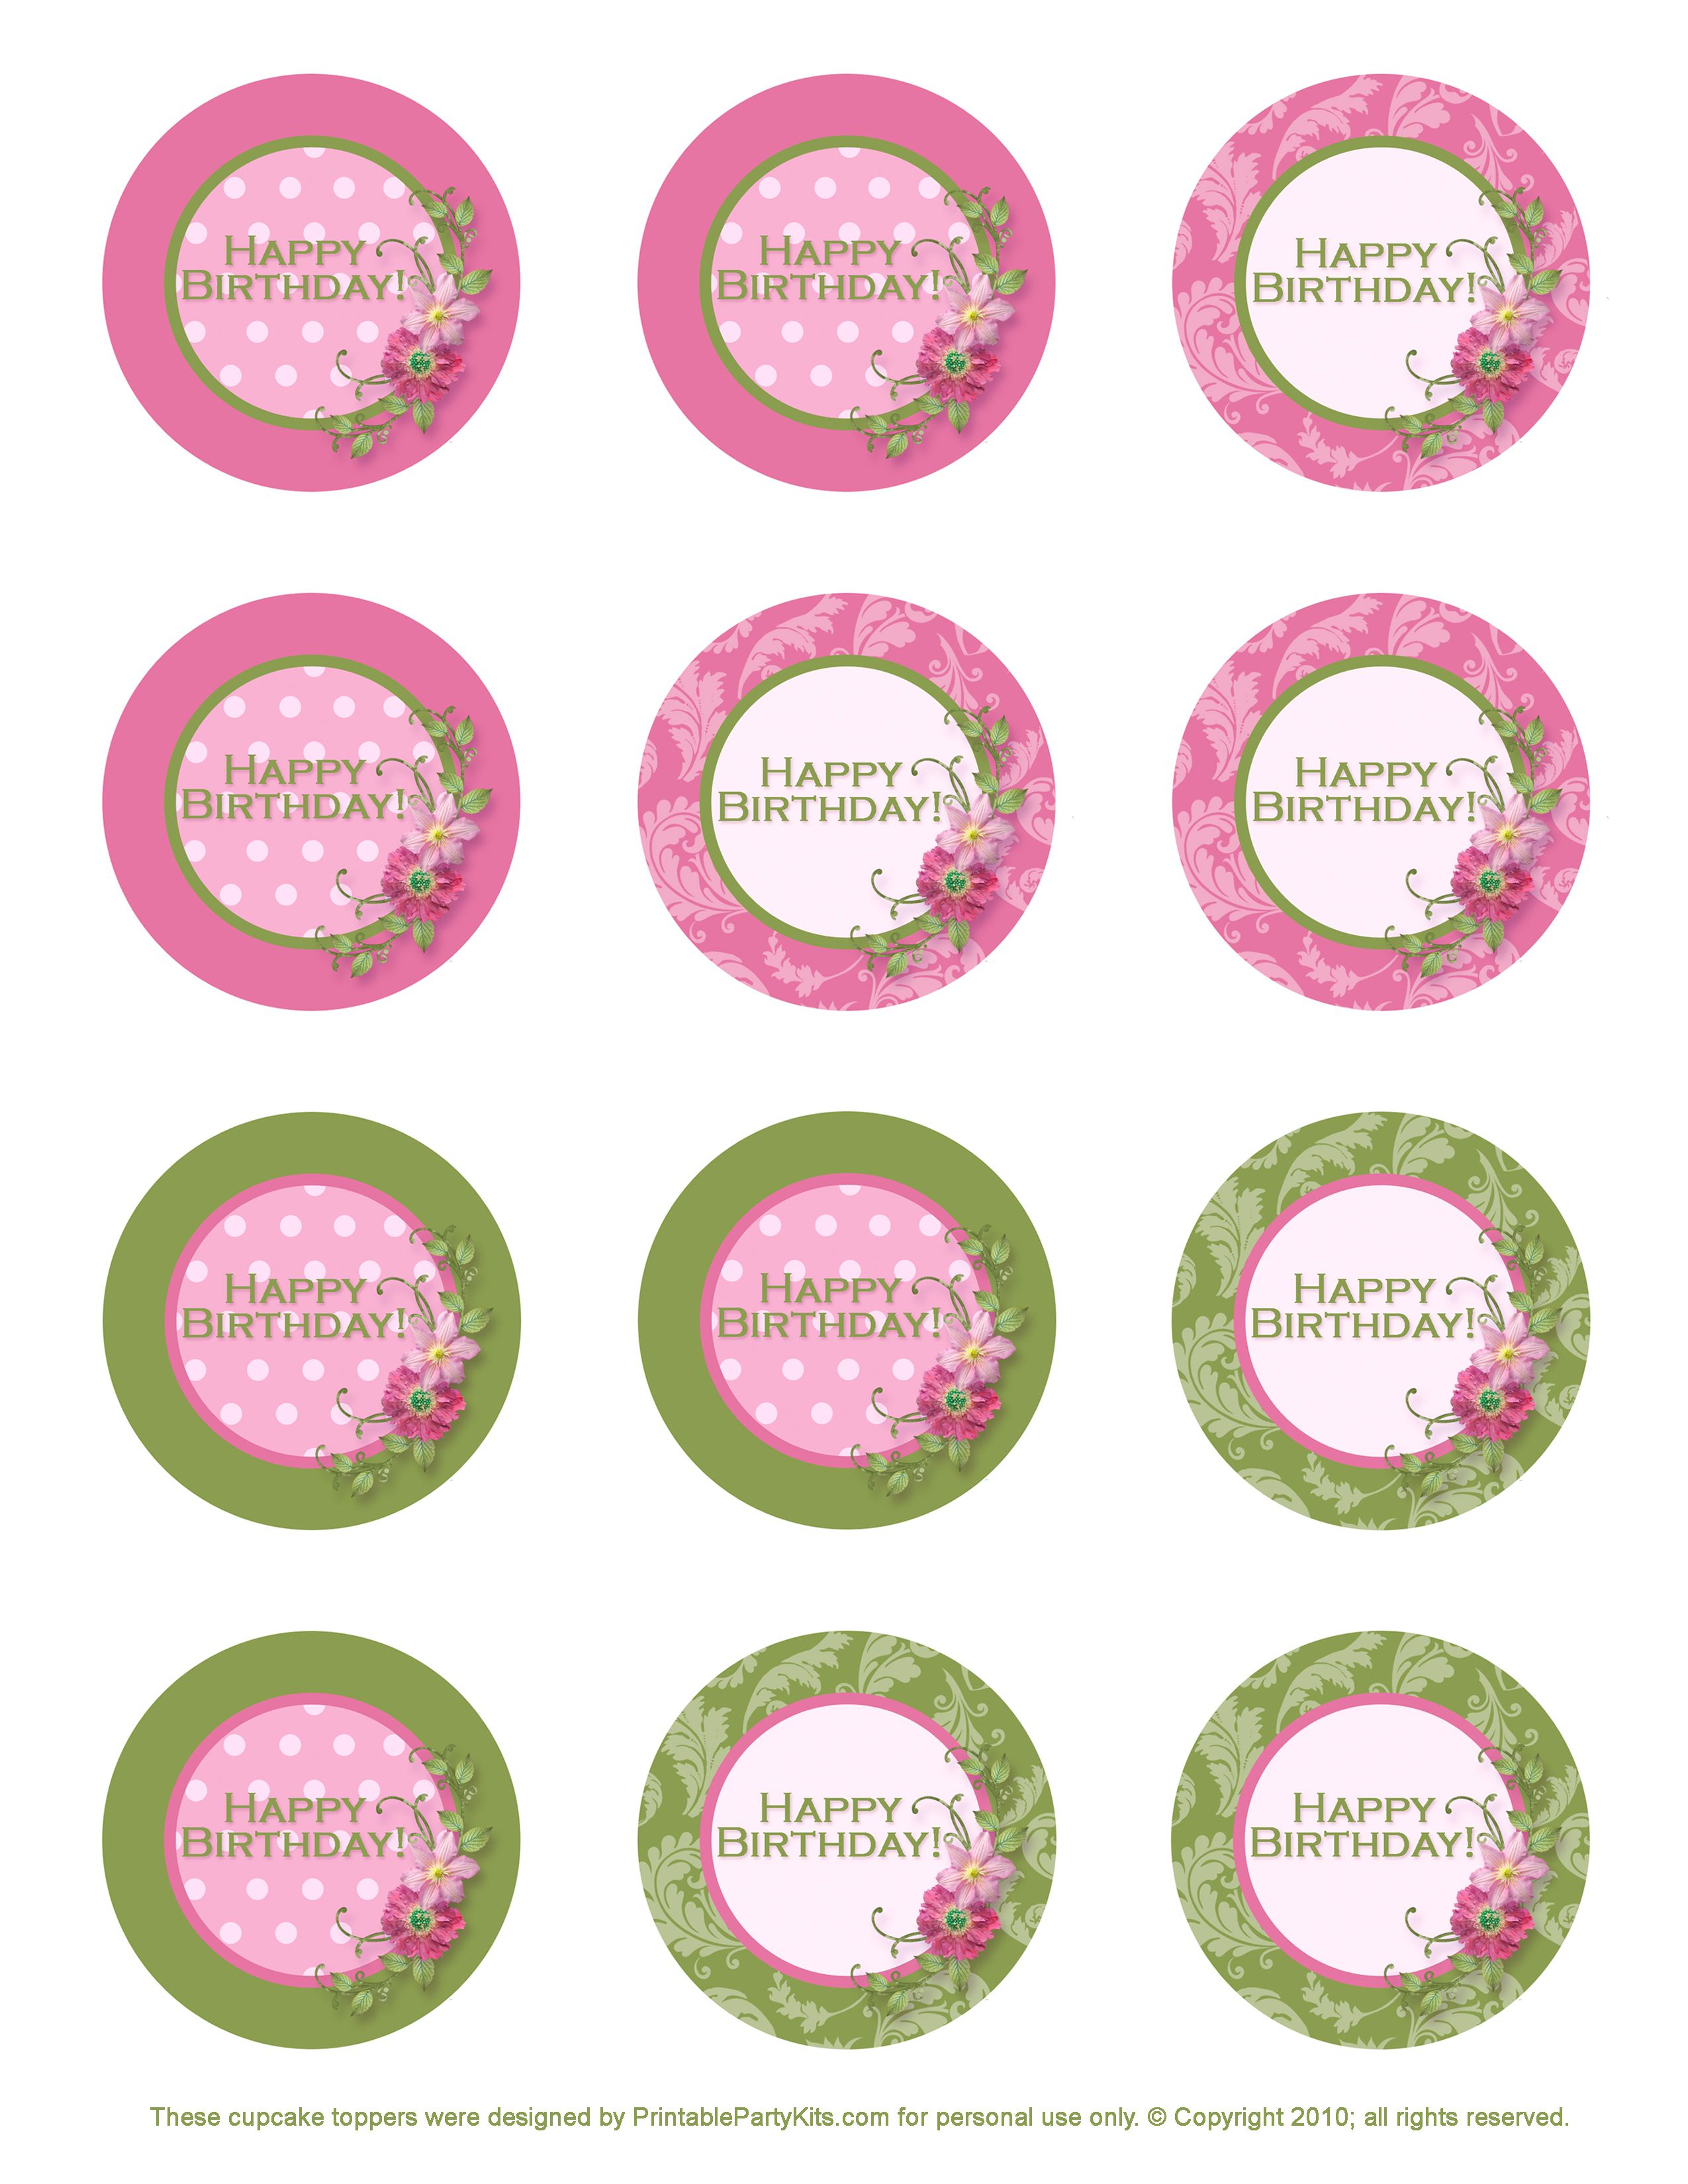 Free Printable Birthday Cupcake Toppers | Crafts | Pinterest - Free Printable Barbie Cupcake Toppers